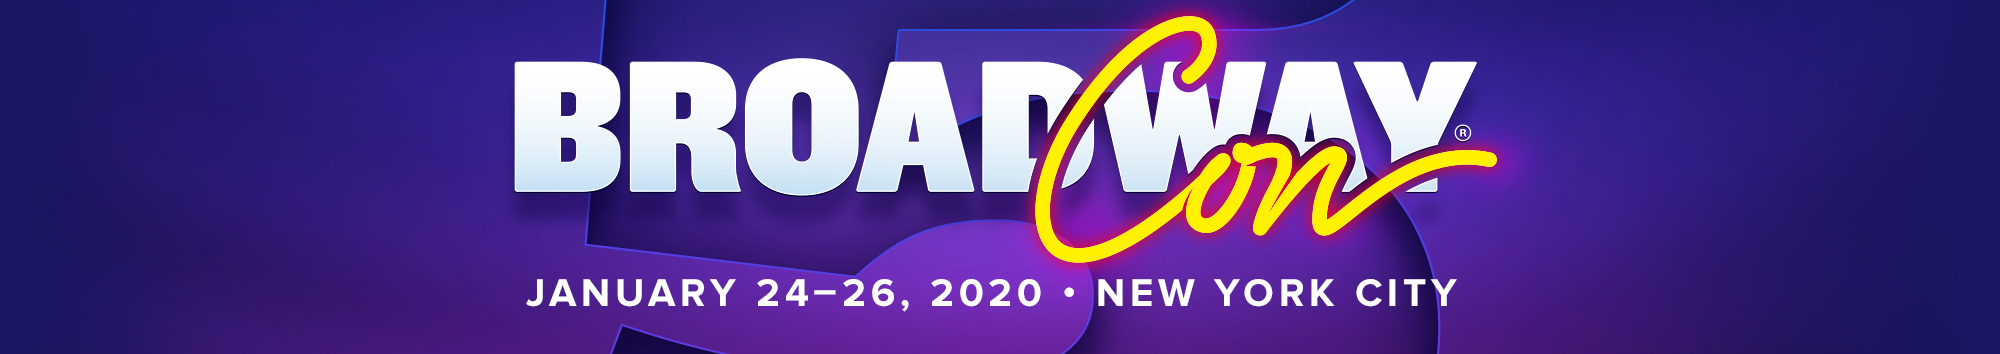 Tickets for BroadwayCon 2020 in New York from ShowClix